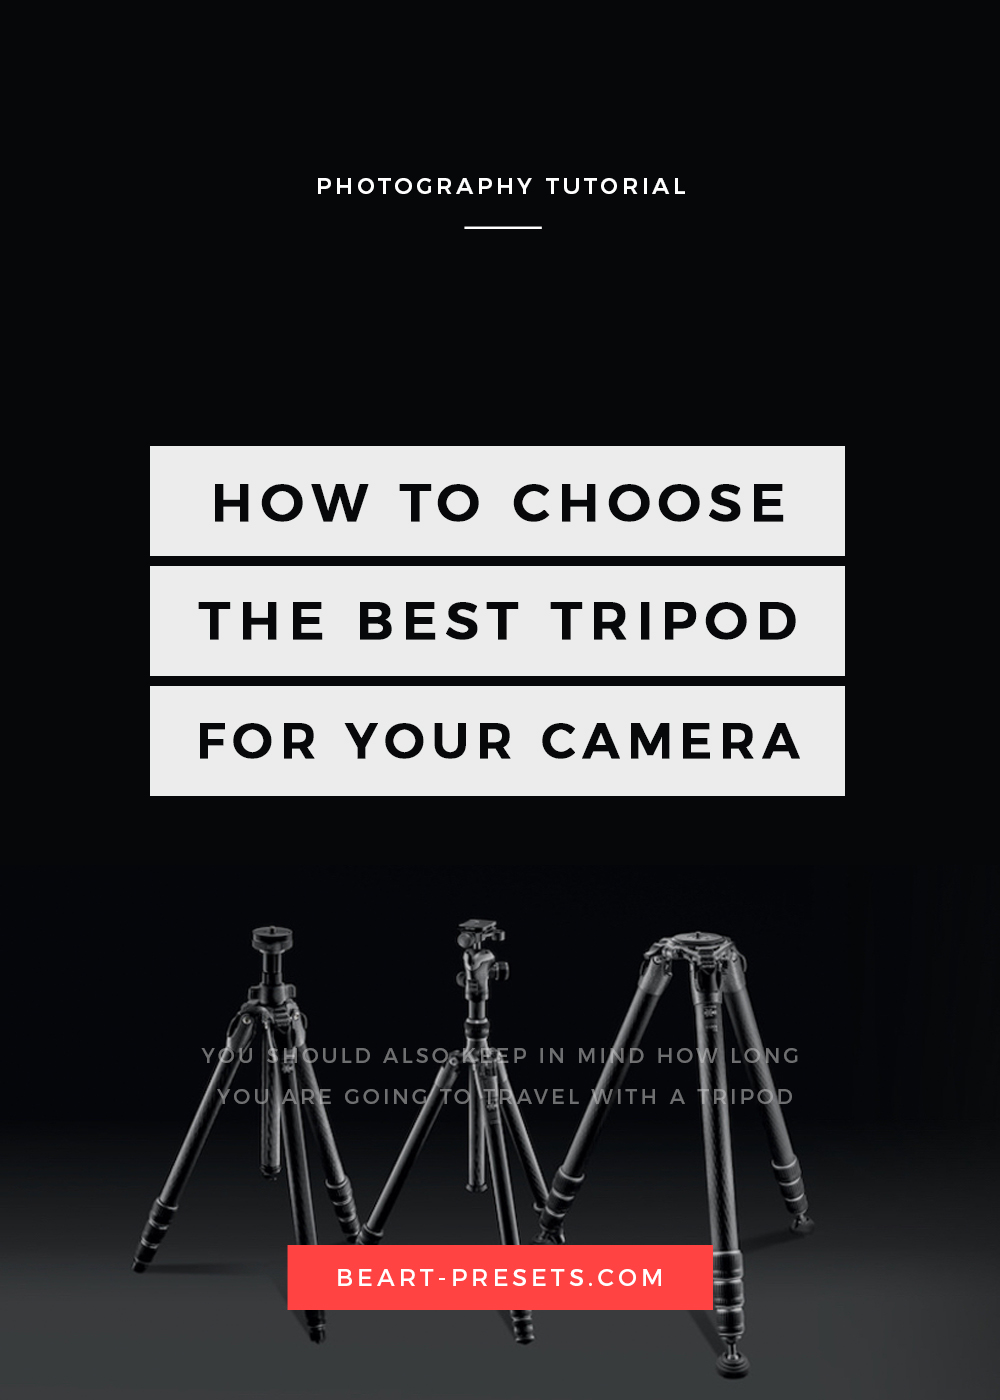 The BEST TRIPOD FOR A DSLR CAMERA